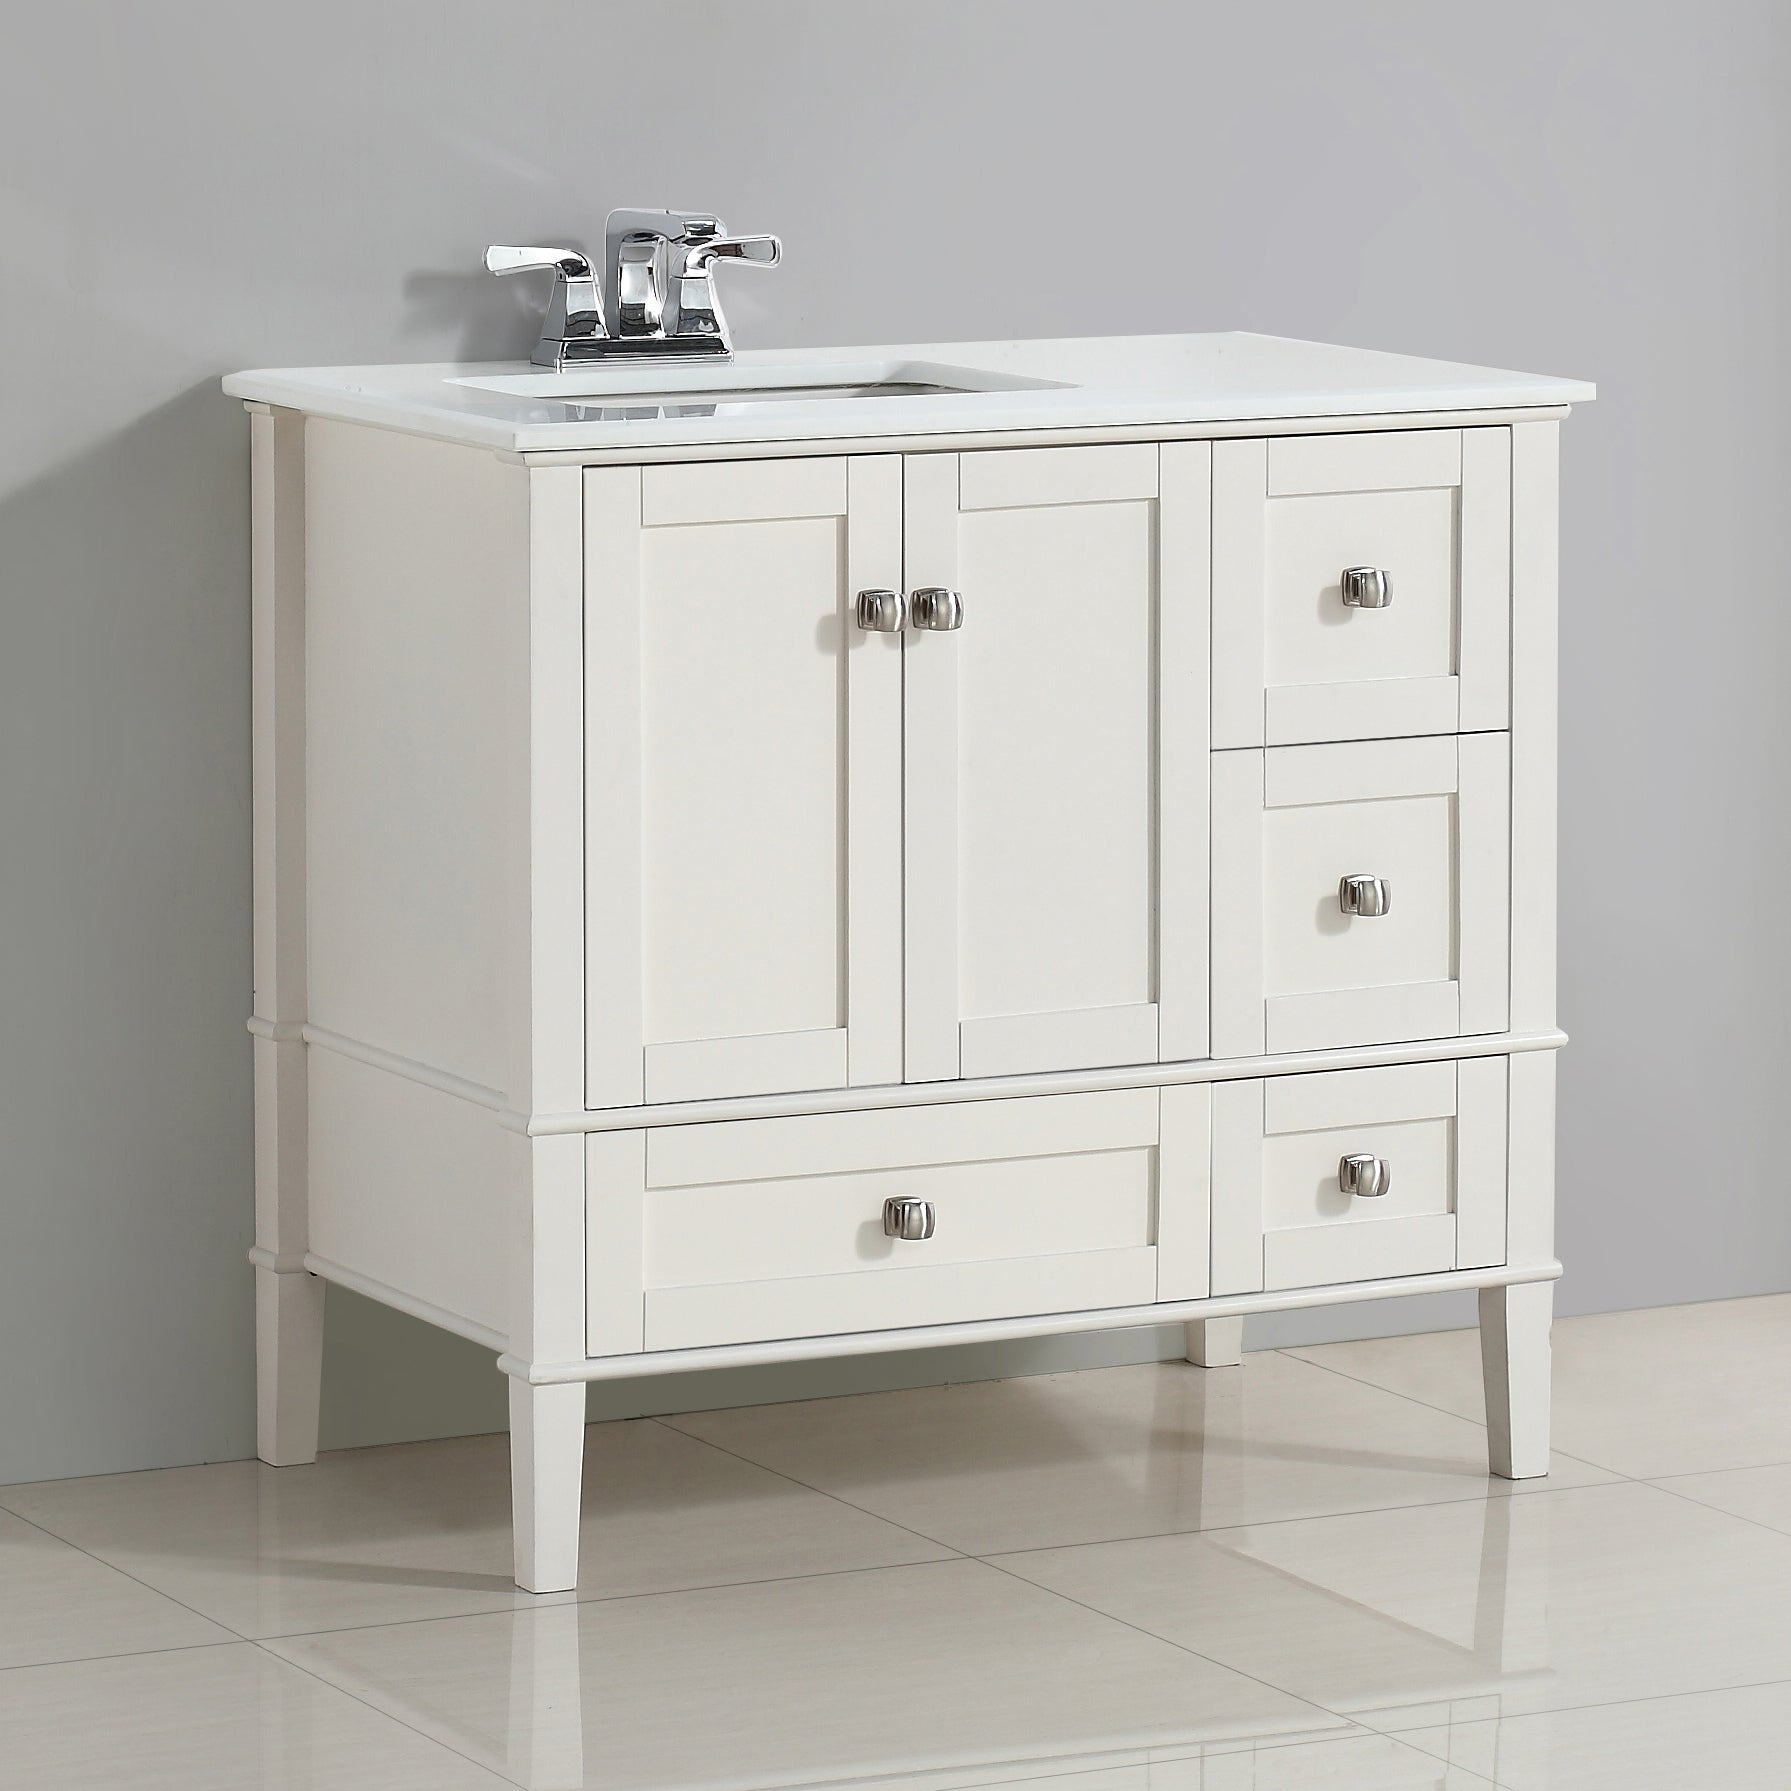 Wyndenhall Windham 36 Inch Contemporary Bath Vanity With White Engineered Quartz Marble Top Overstock 9959935